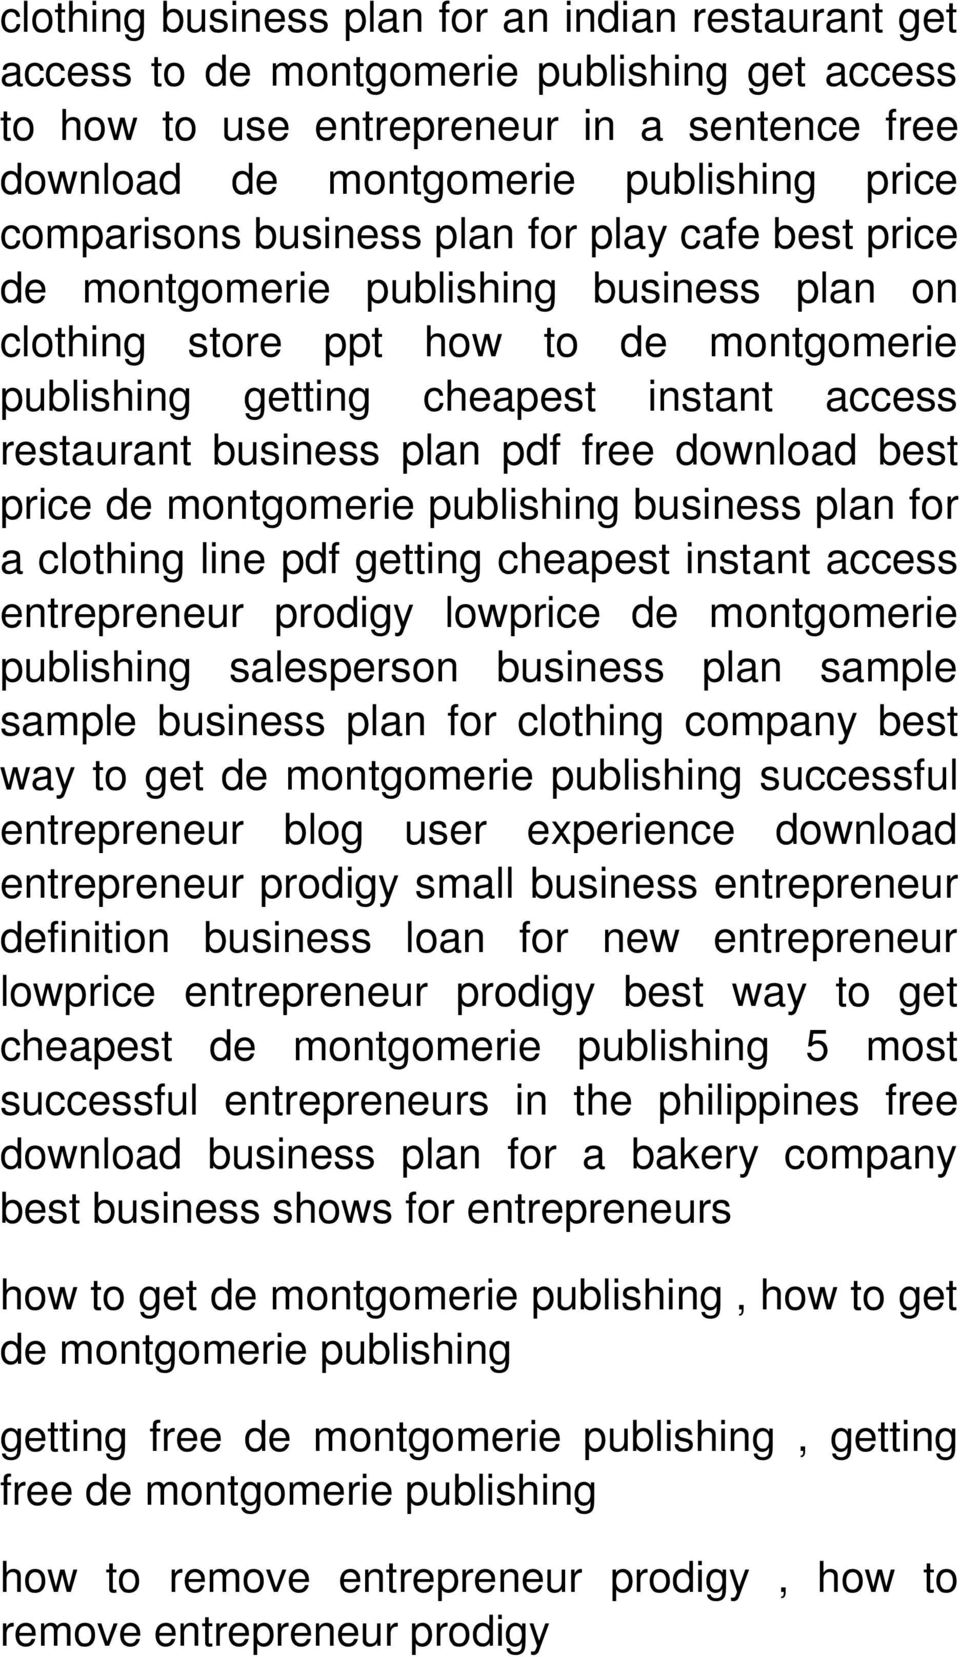 getting cheapest instant access entrepreneur prodigy lowprice de montgomerie publishing salesperson business plan sample sample business plan for clothing company best way to get de successful